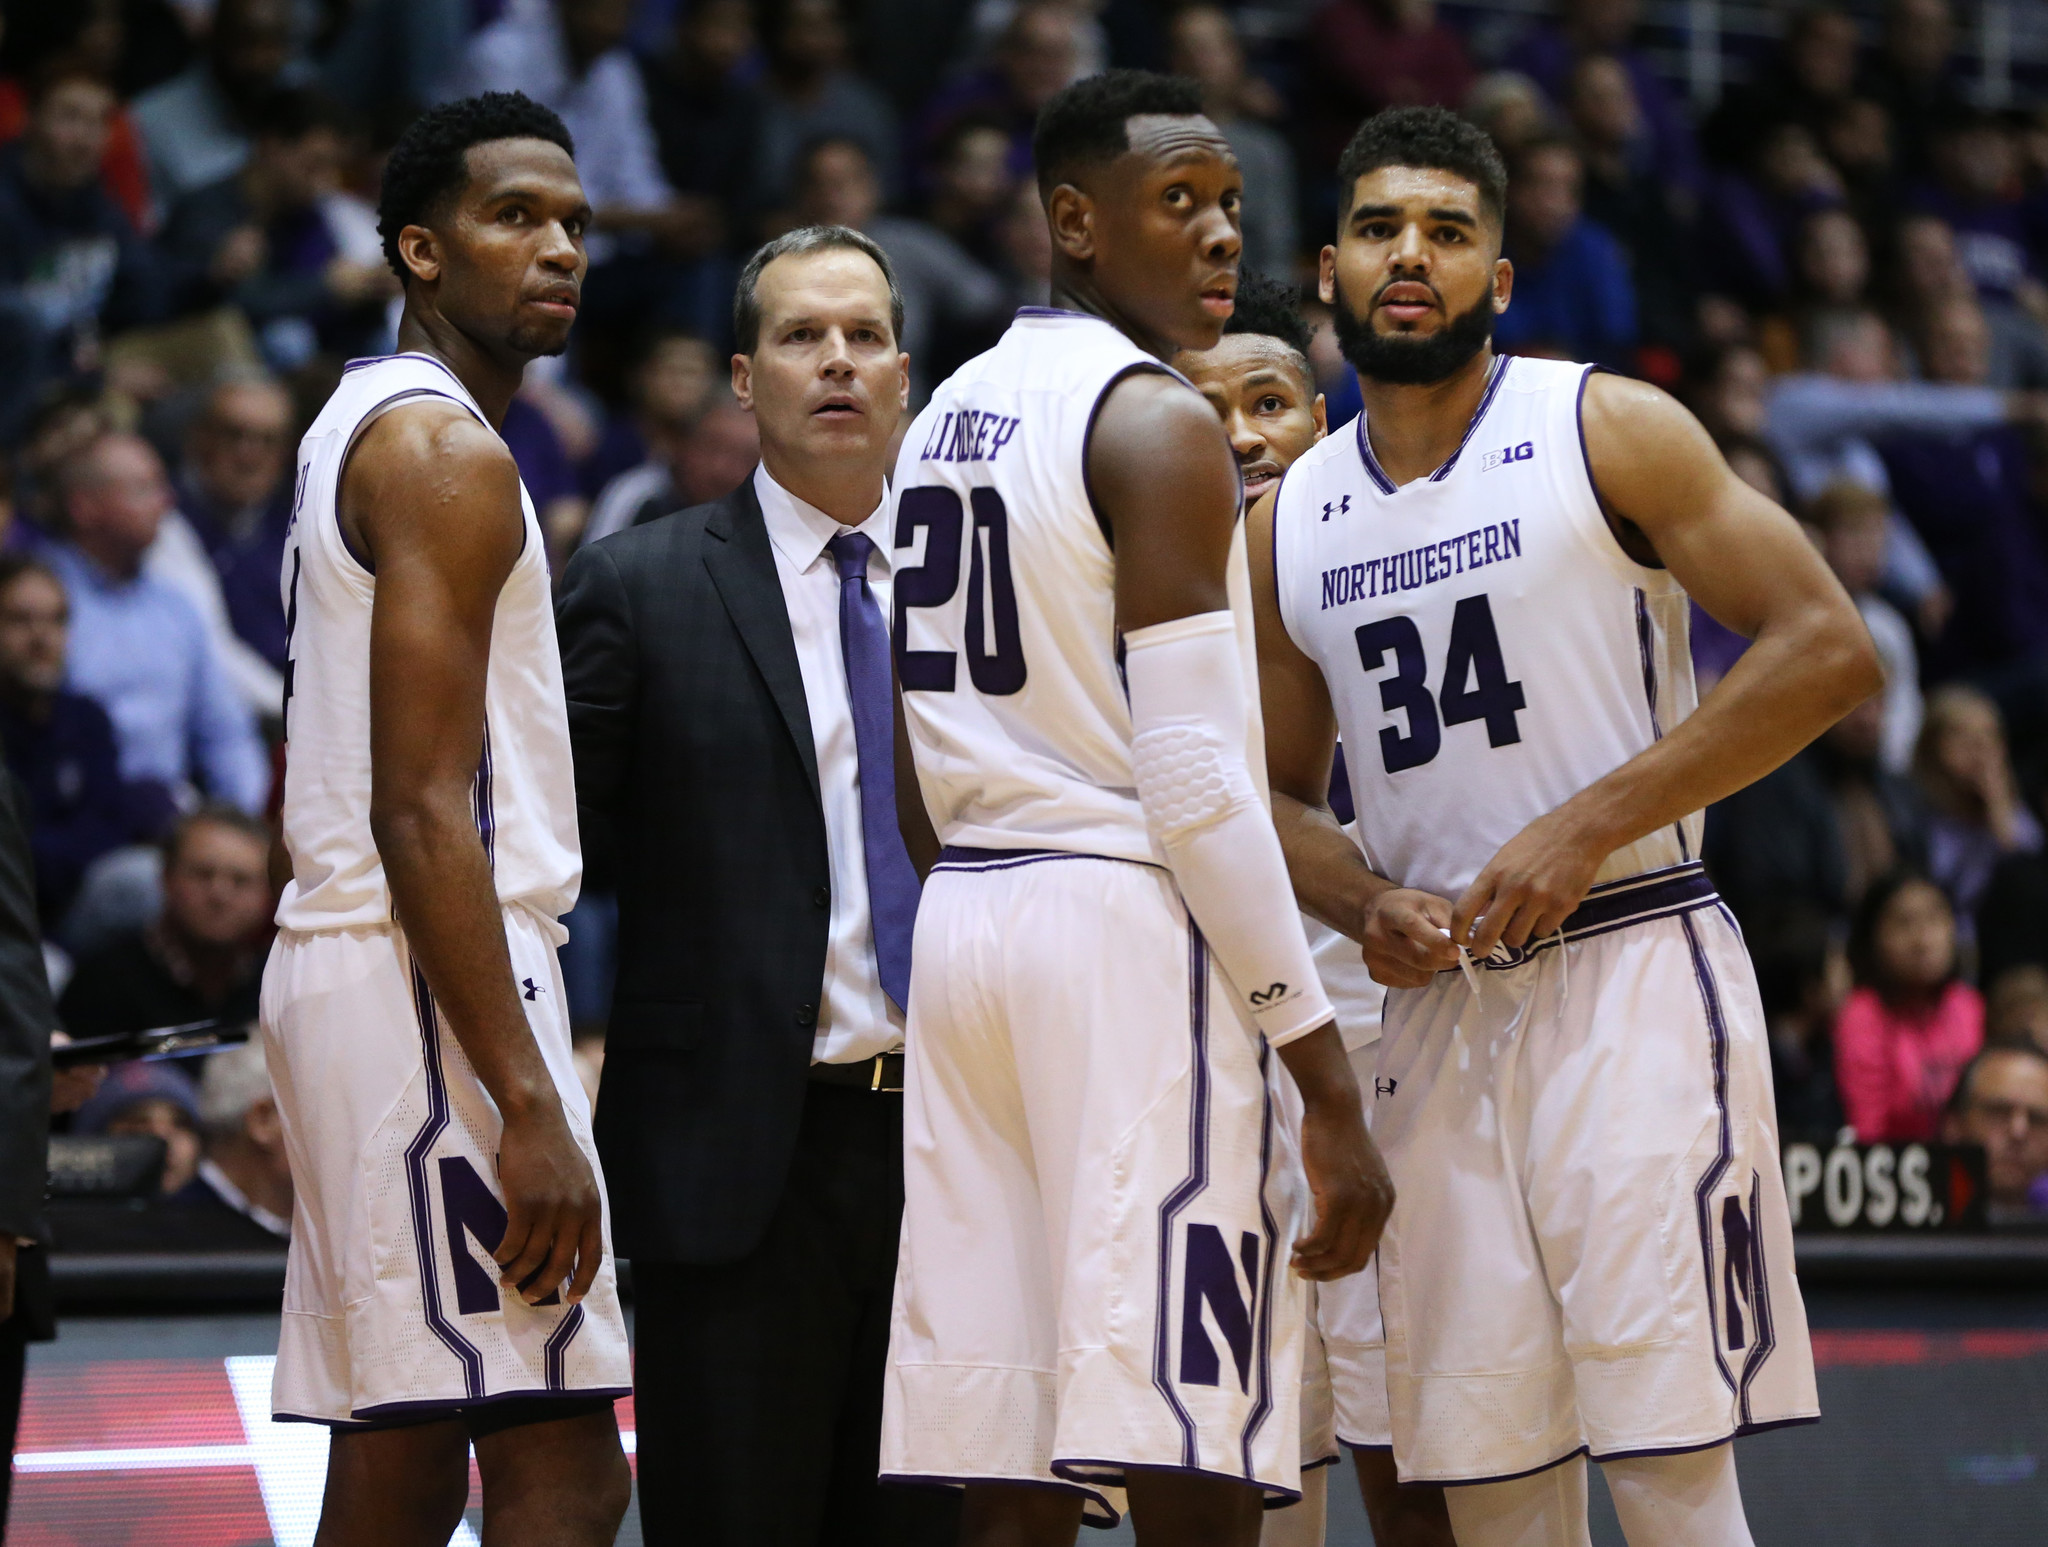 Ct-depaul-northwestern-basketball-spt-1204-20161203